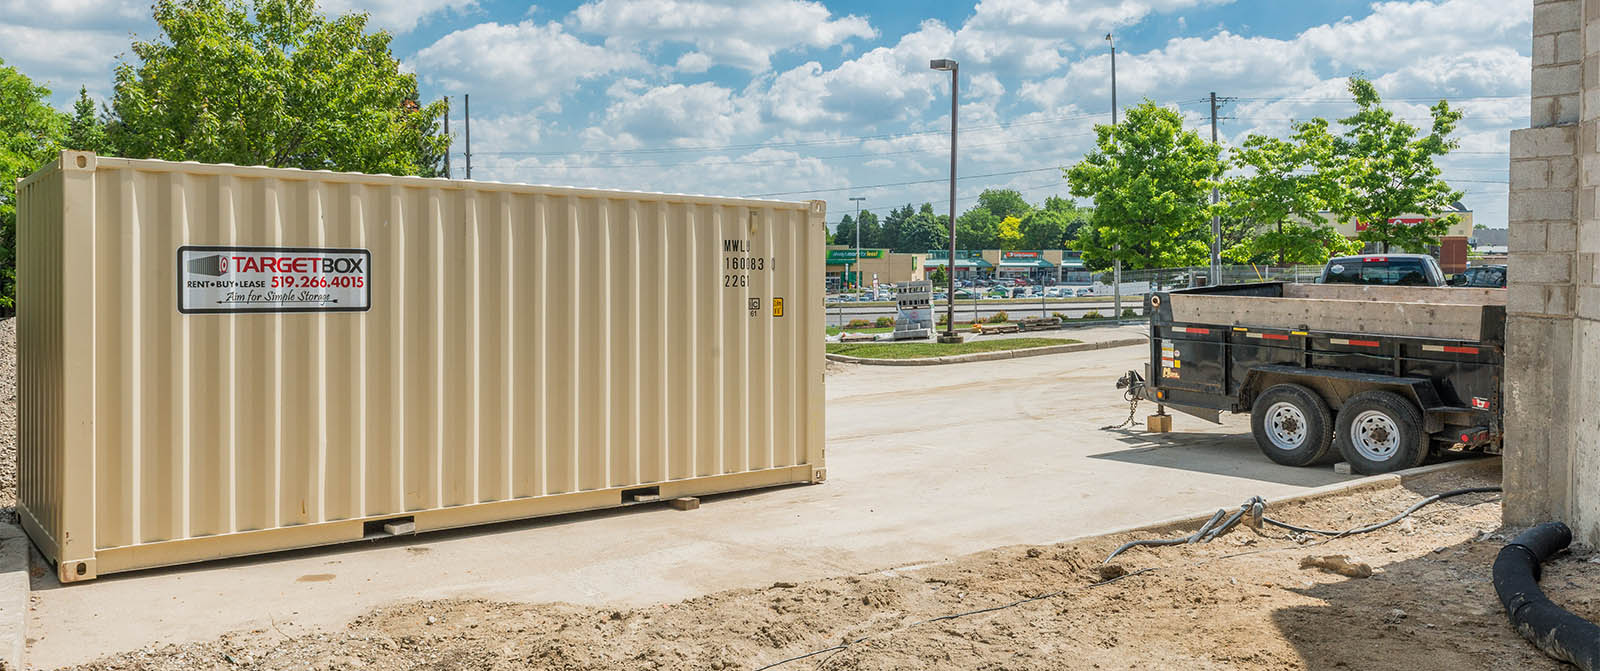 Storage Solutions For Construction Companies - TargetBox Containers